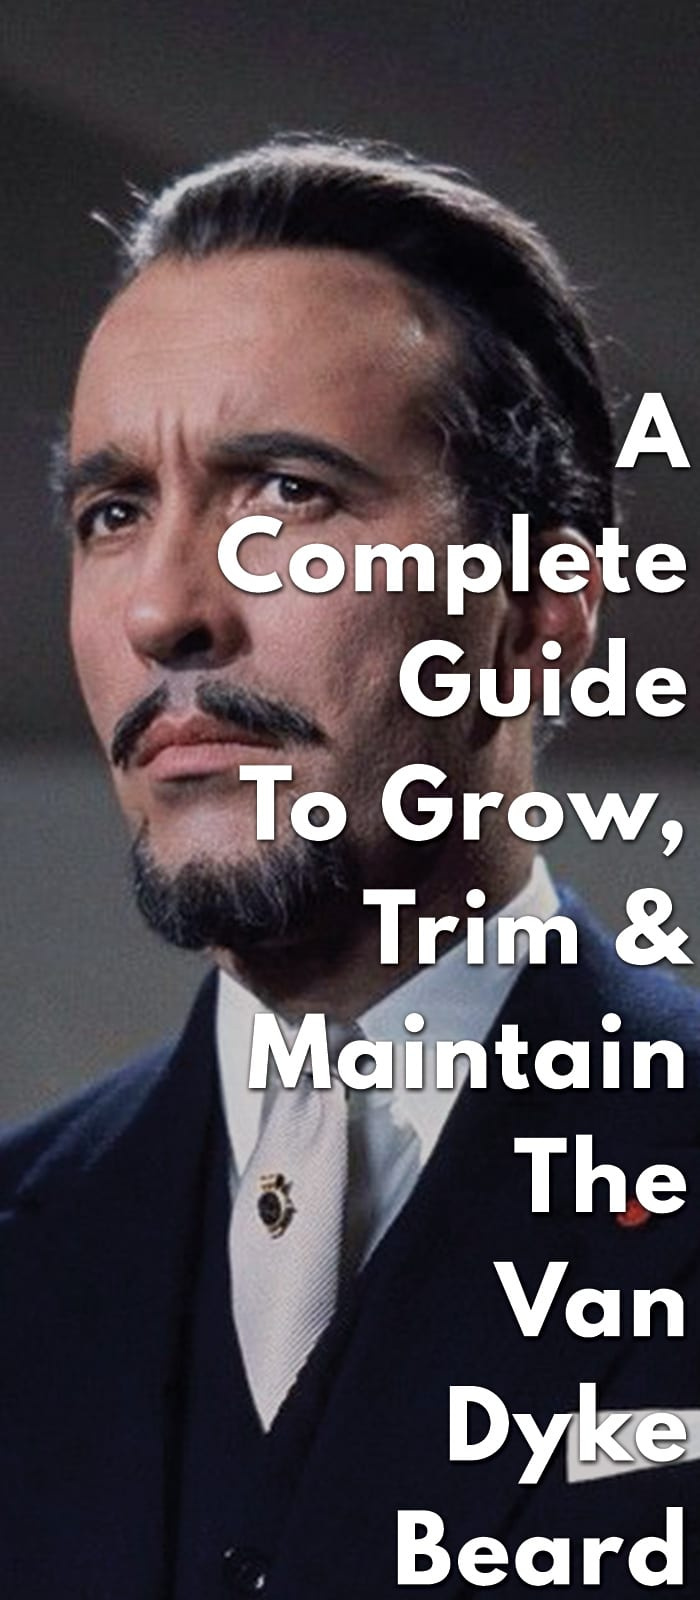 A-Complete-Guide-To-Grow,-Trim-&-Maintain-The-Van-Dyke-Beard.